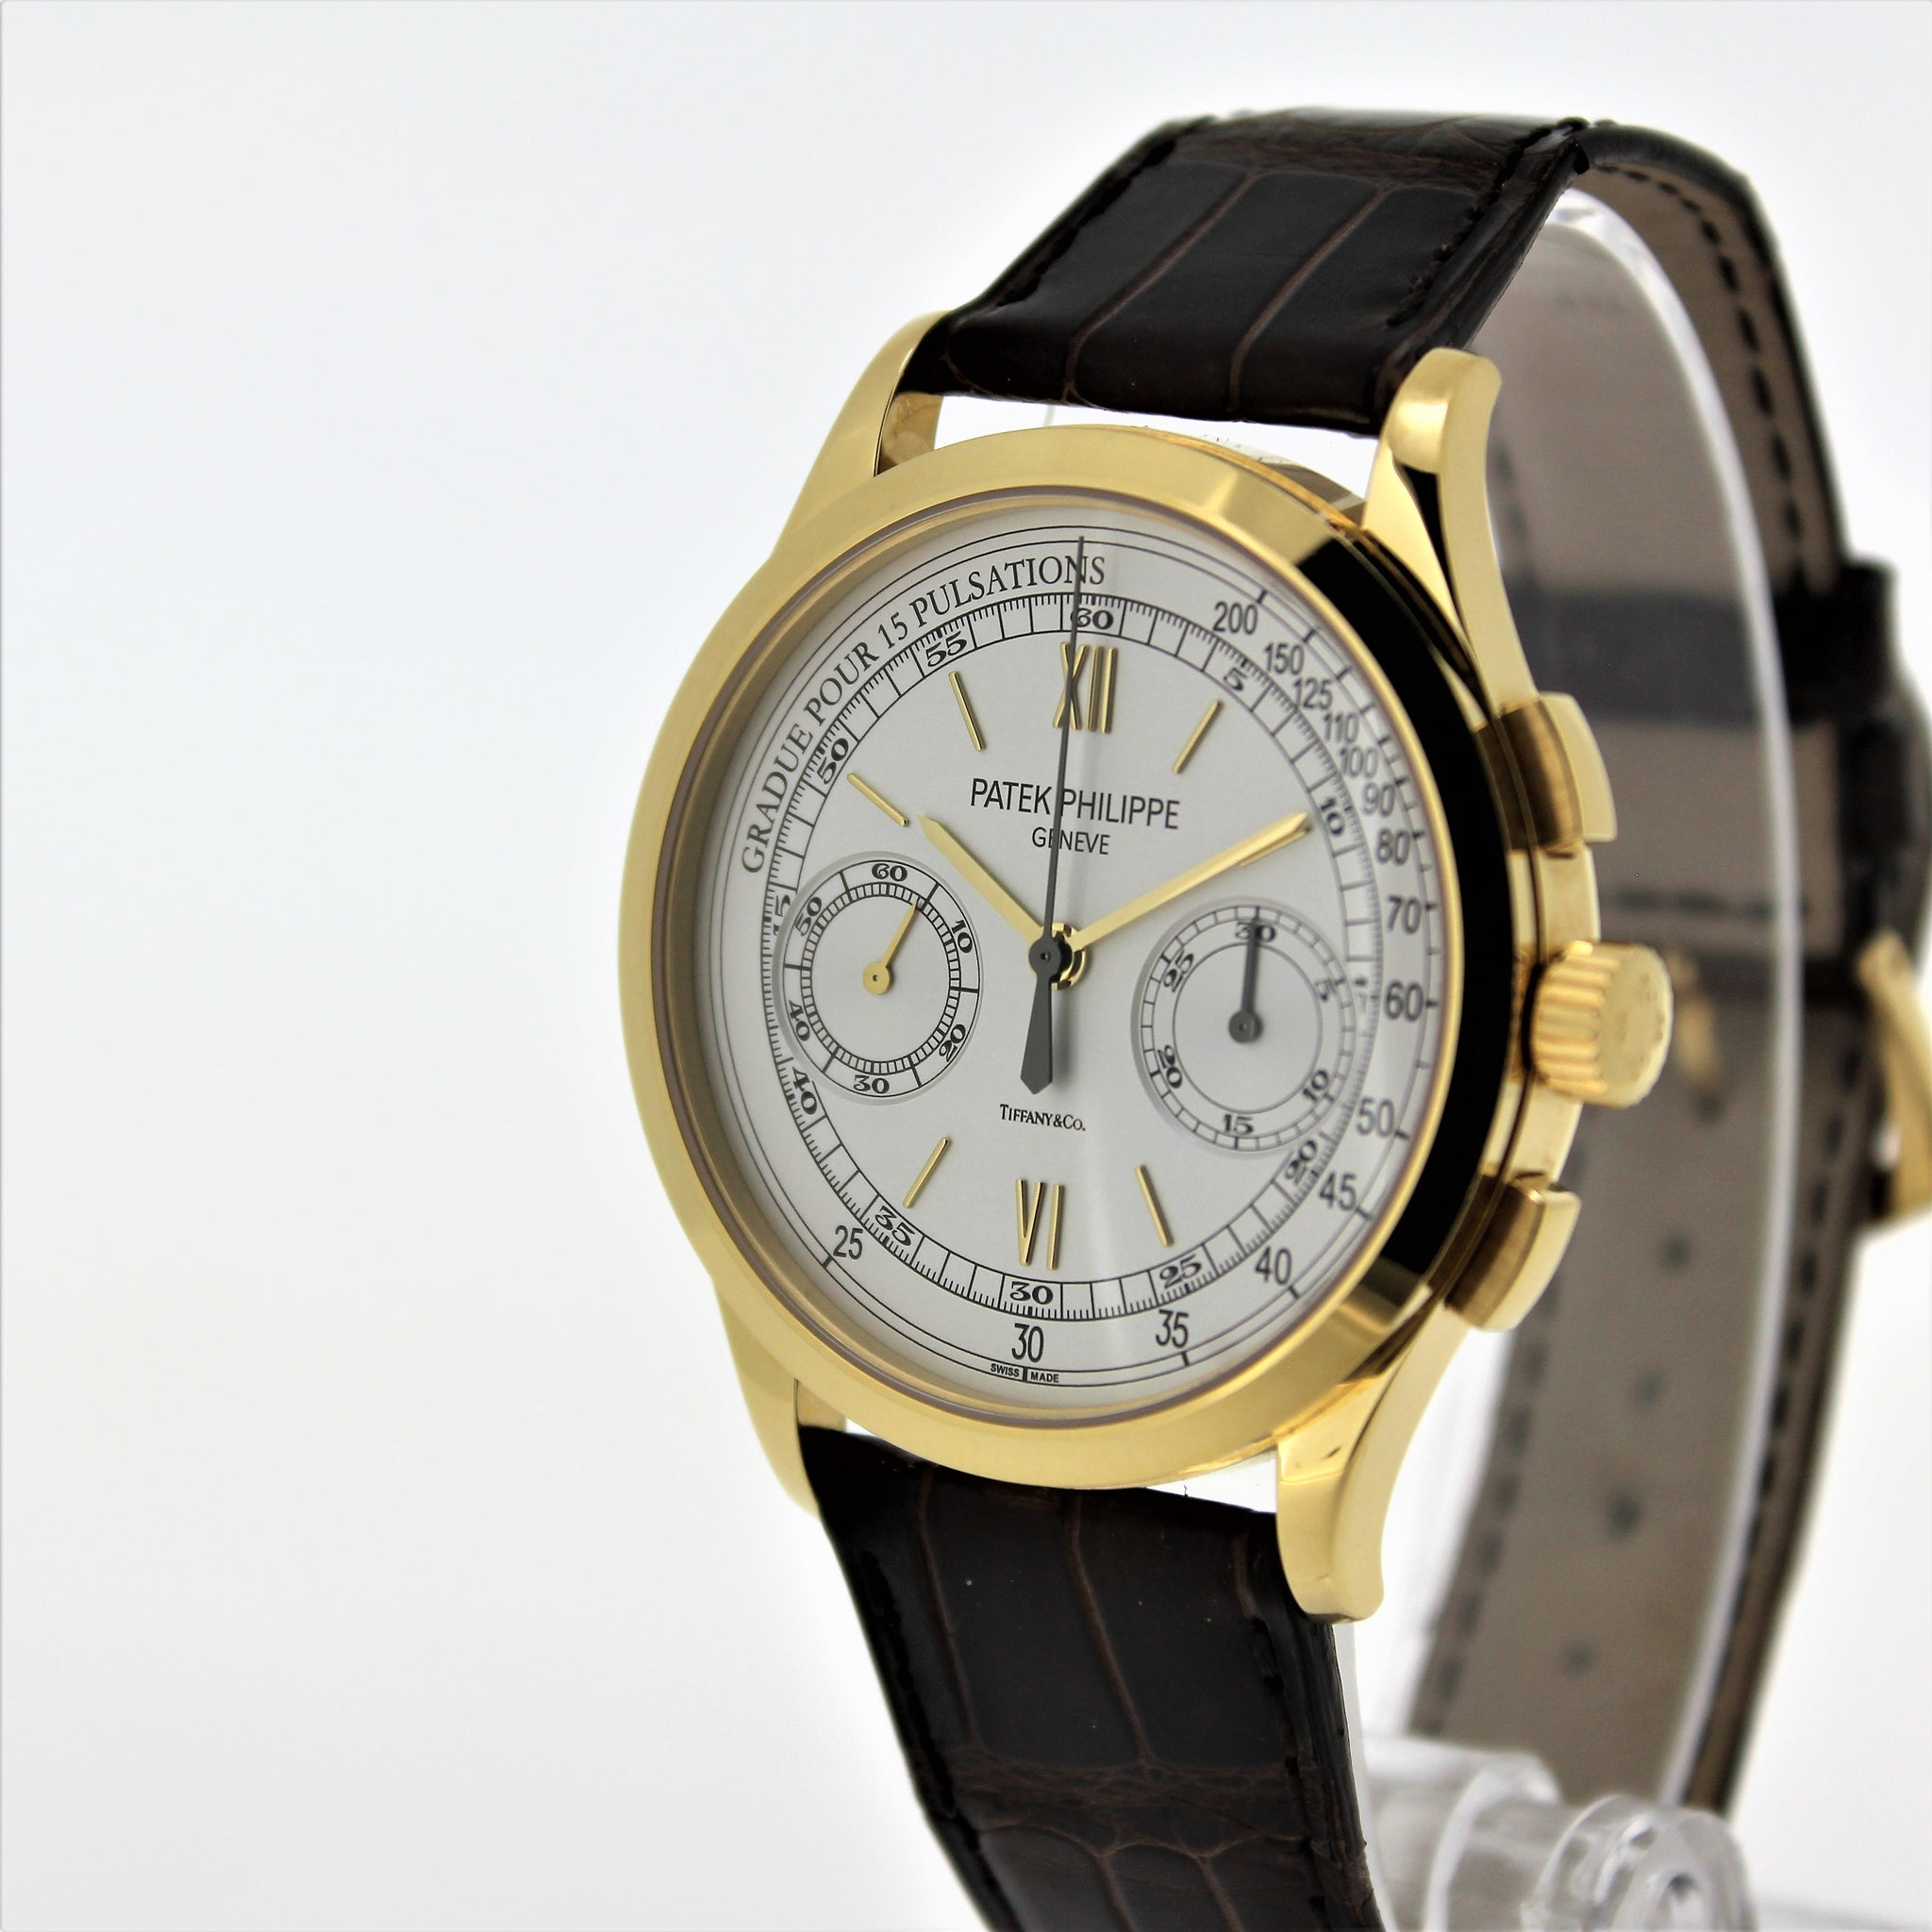 Patek Philippe 5170J-001 Chronograph Watch